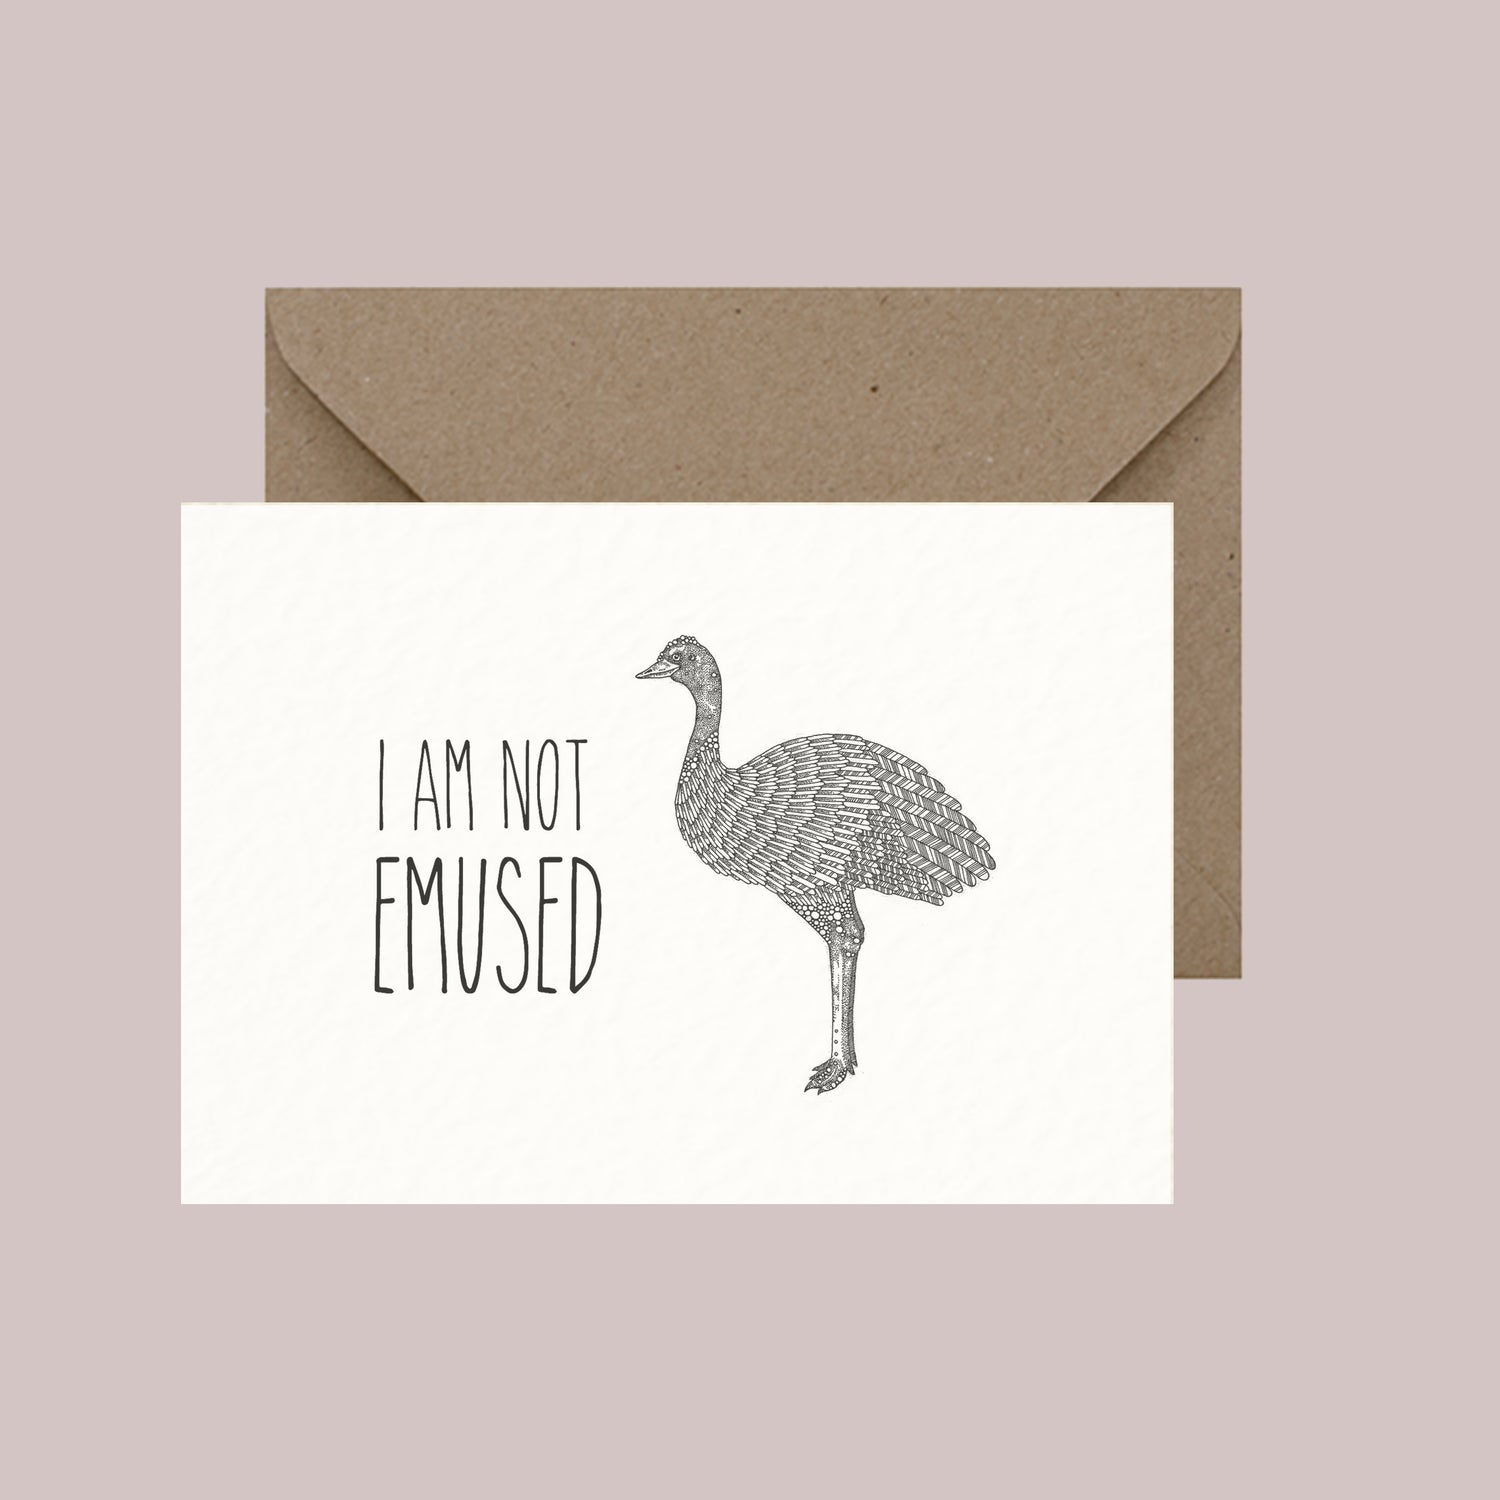 """Image of """"I am not emused"""" greeting card"""